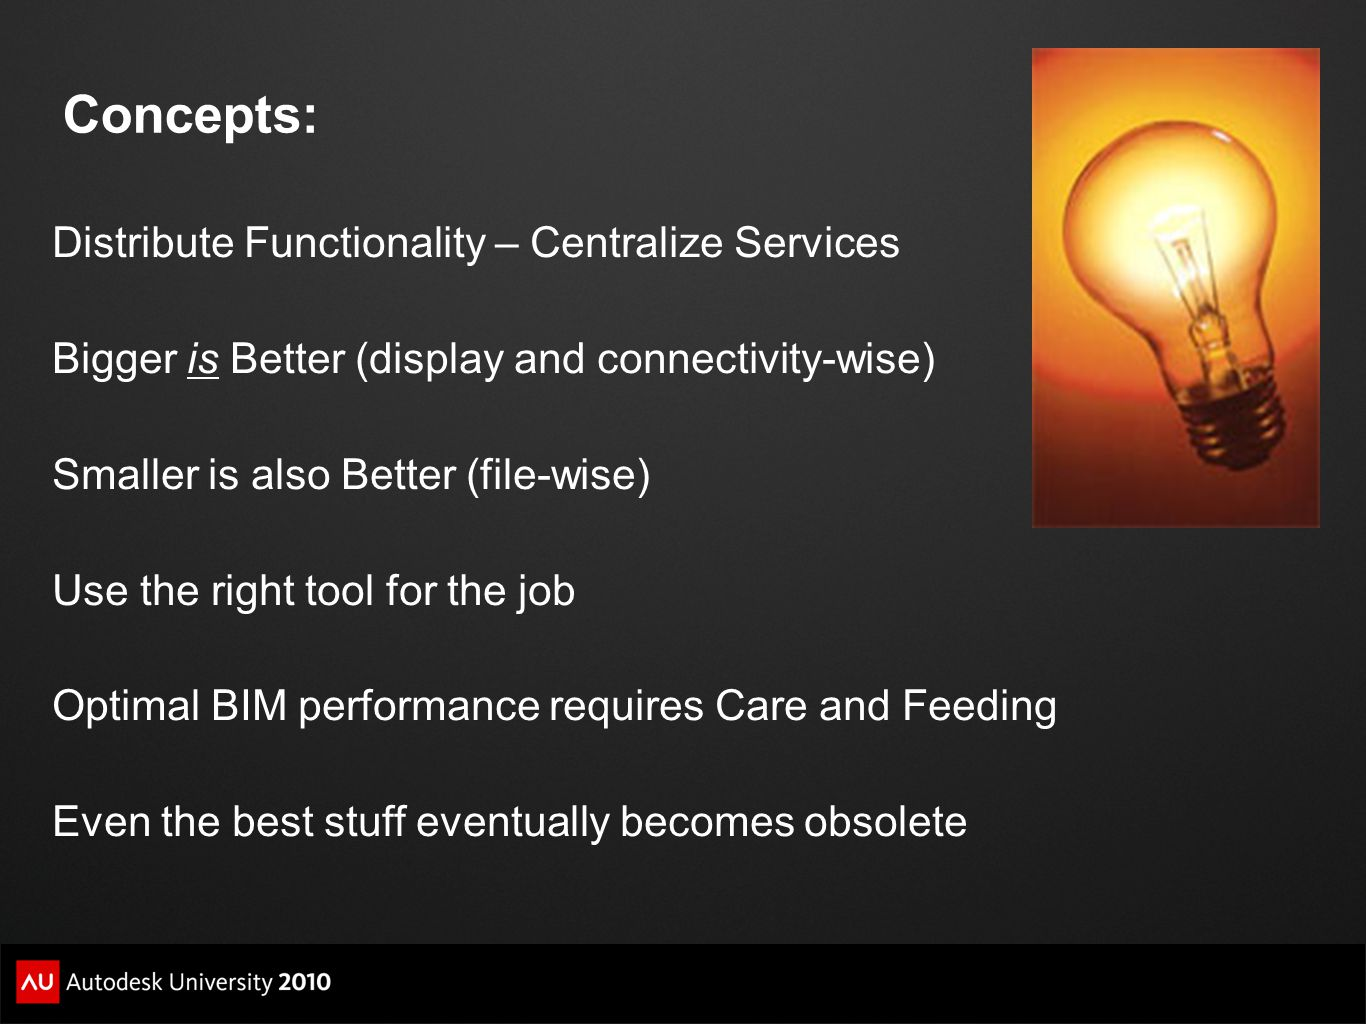 Concepts: Distribute Functionality – Centralize Services Bigger is Better (display and connectivity-wise) Smaller is also Better (file-wise) Use the right tool for the job Optimal BIM performance requires Care and Feeding Even the best stuff eventually becomes obsolete